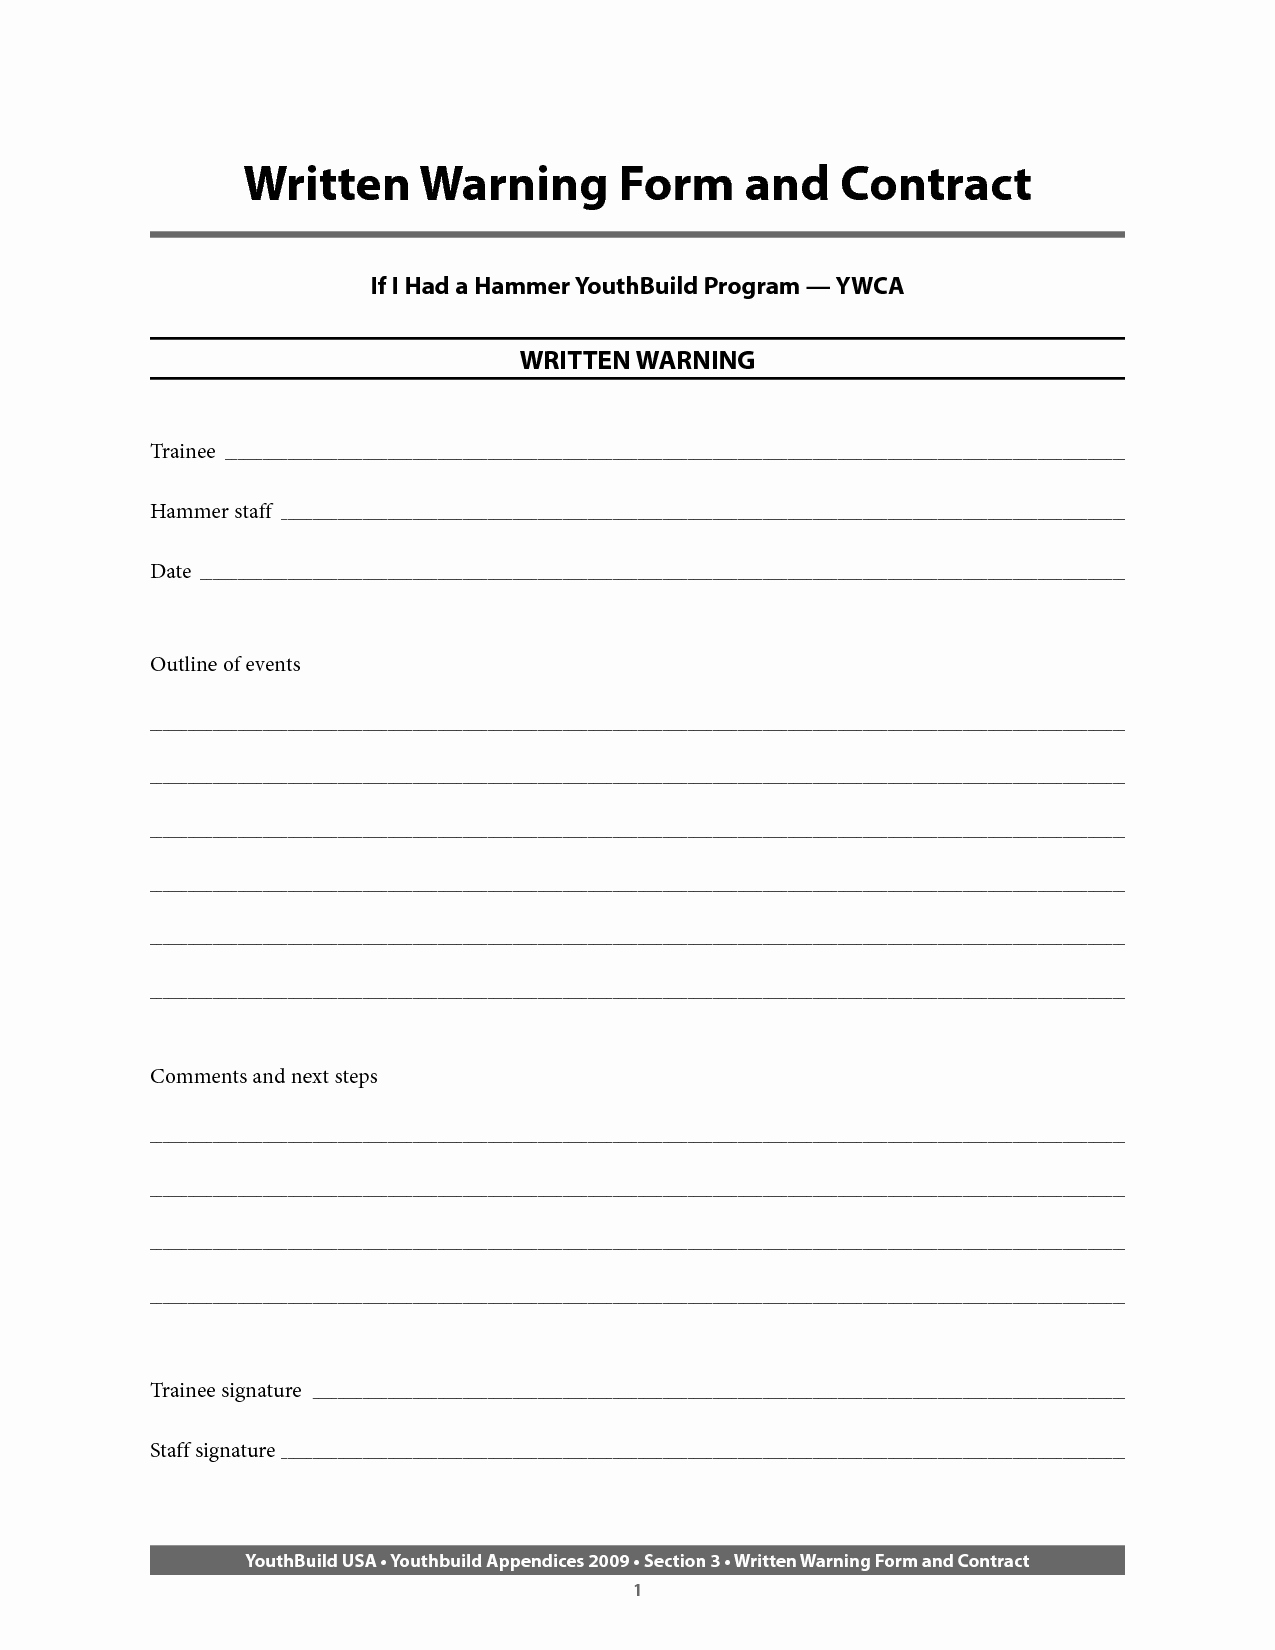 Time Clock Correction form Template Luxury Written Warning Template